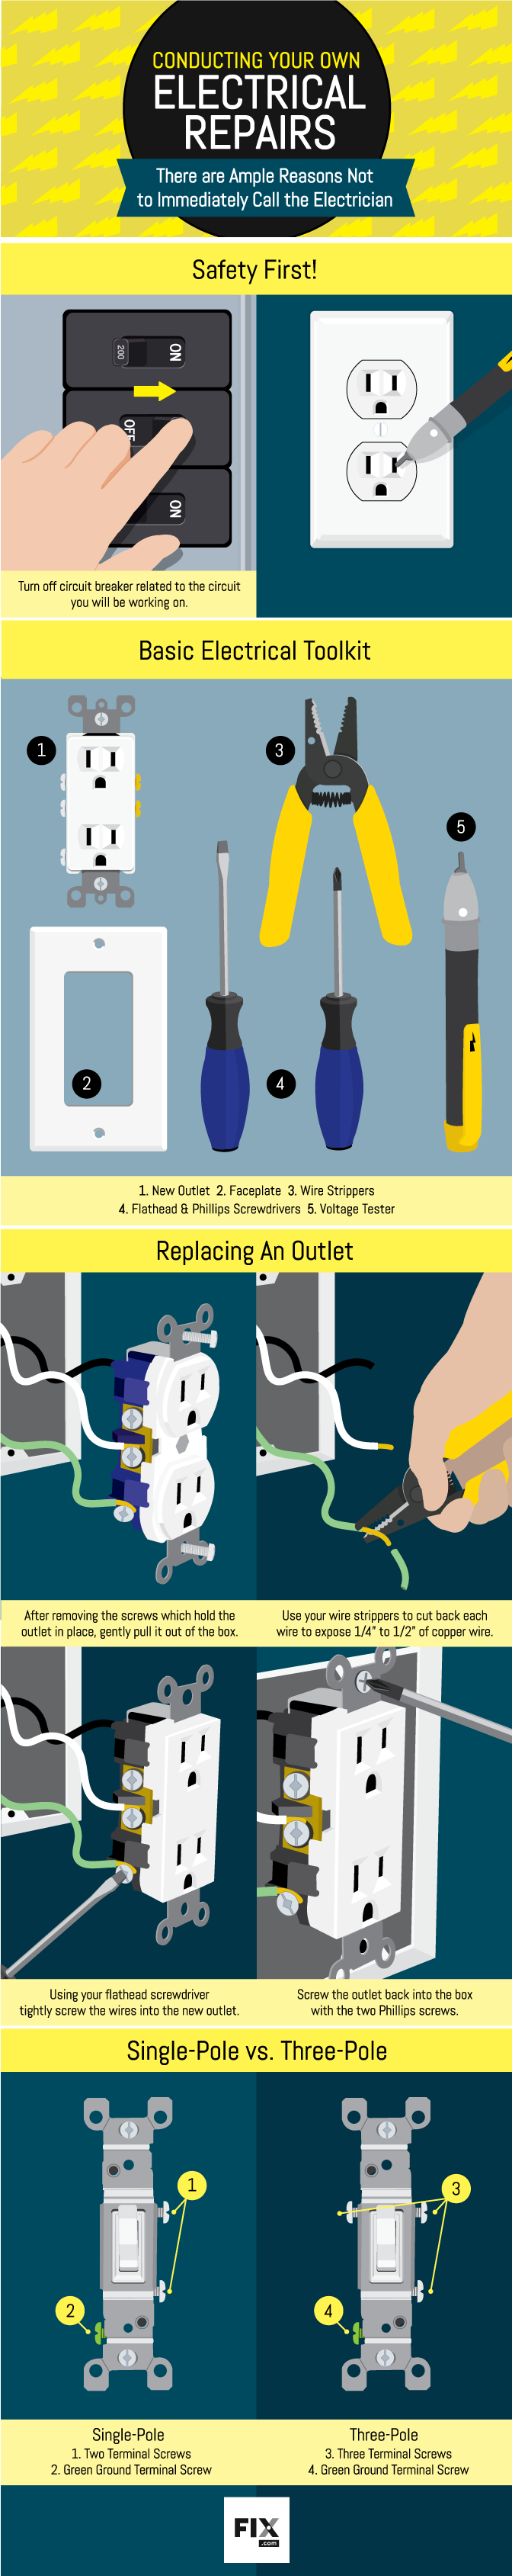 Way And  Way Switch Wiring For Residential Lighting Light - Three way switch electrical symbol